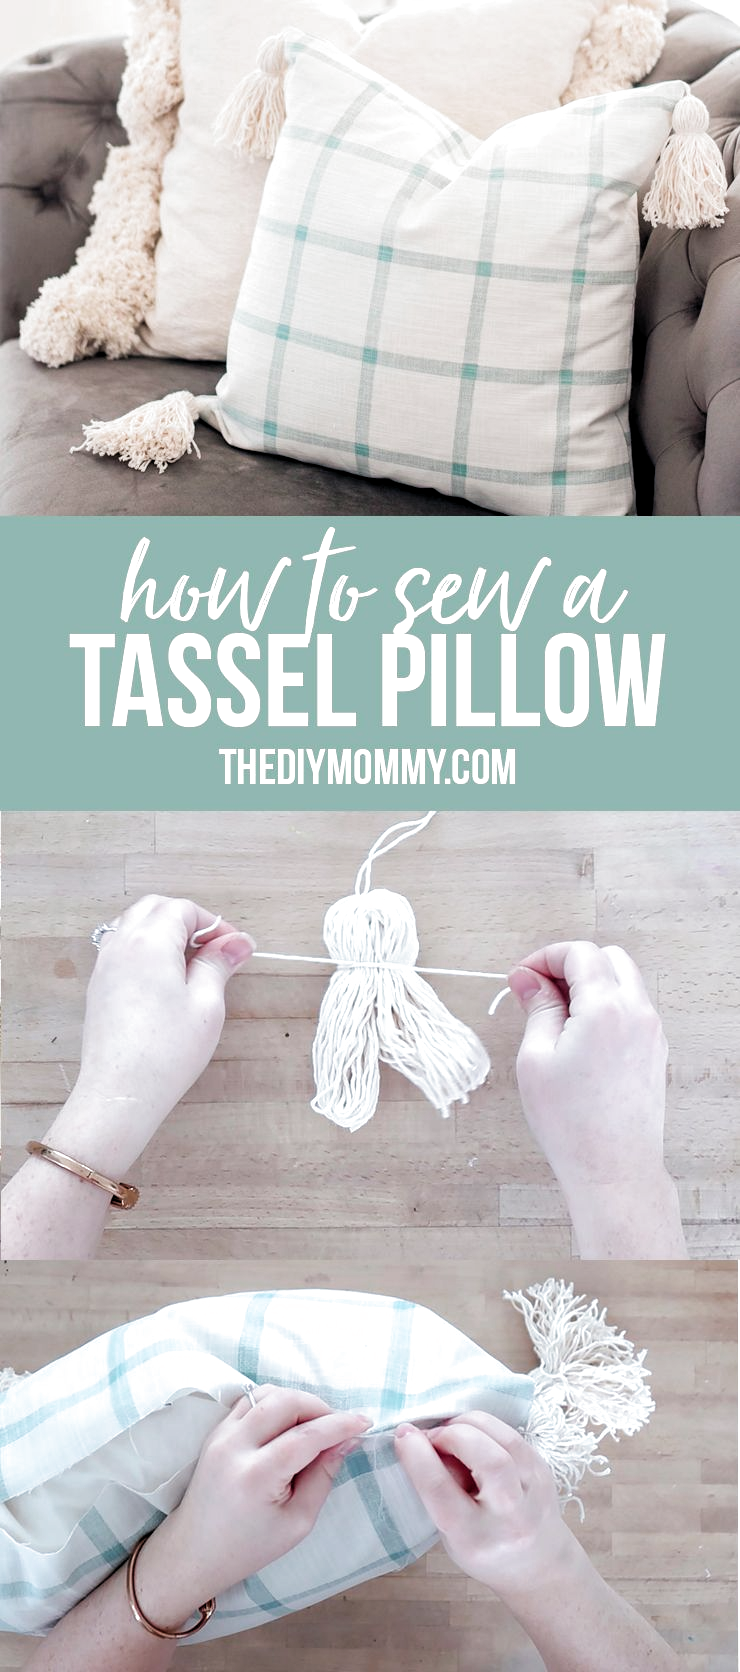 Easy DIY! Learn how to sew a beautiful tassel pillow cover with a step-by-step video tutorial. | thediymommy.com #DIYdecor